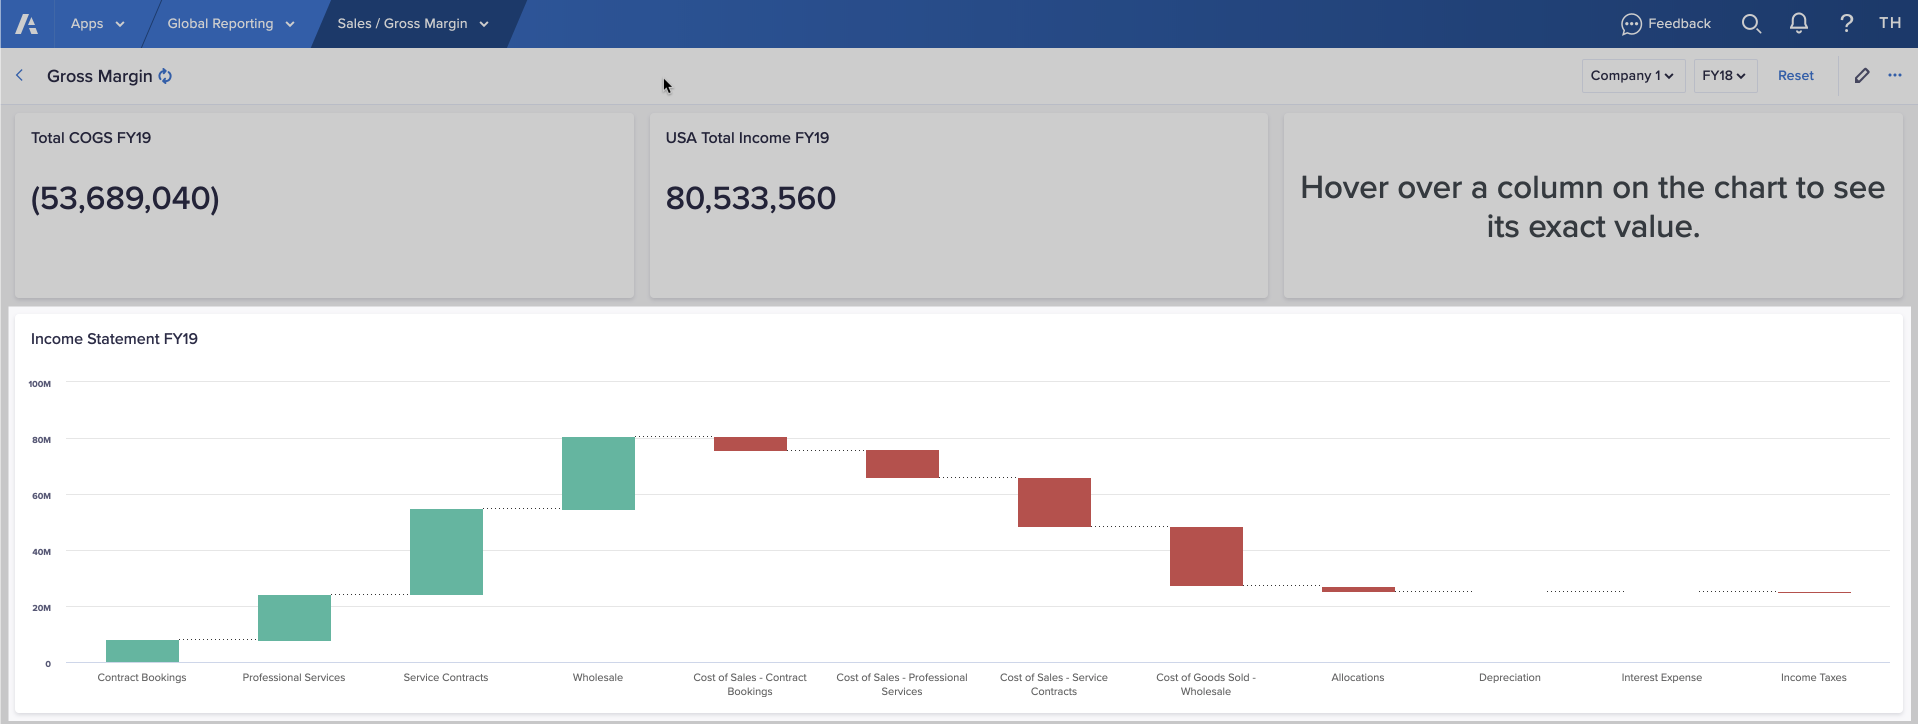 A chart card on a board that has been configured as a waterfall chart. It shows positive and negative changes to a company's income statement for FY19.